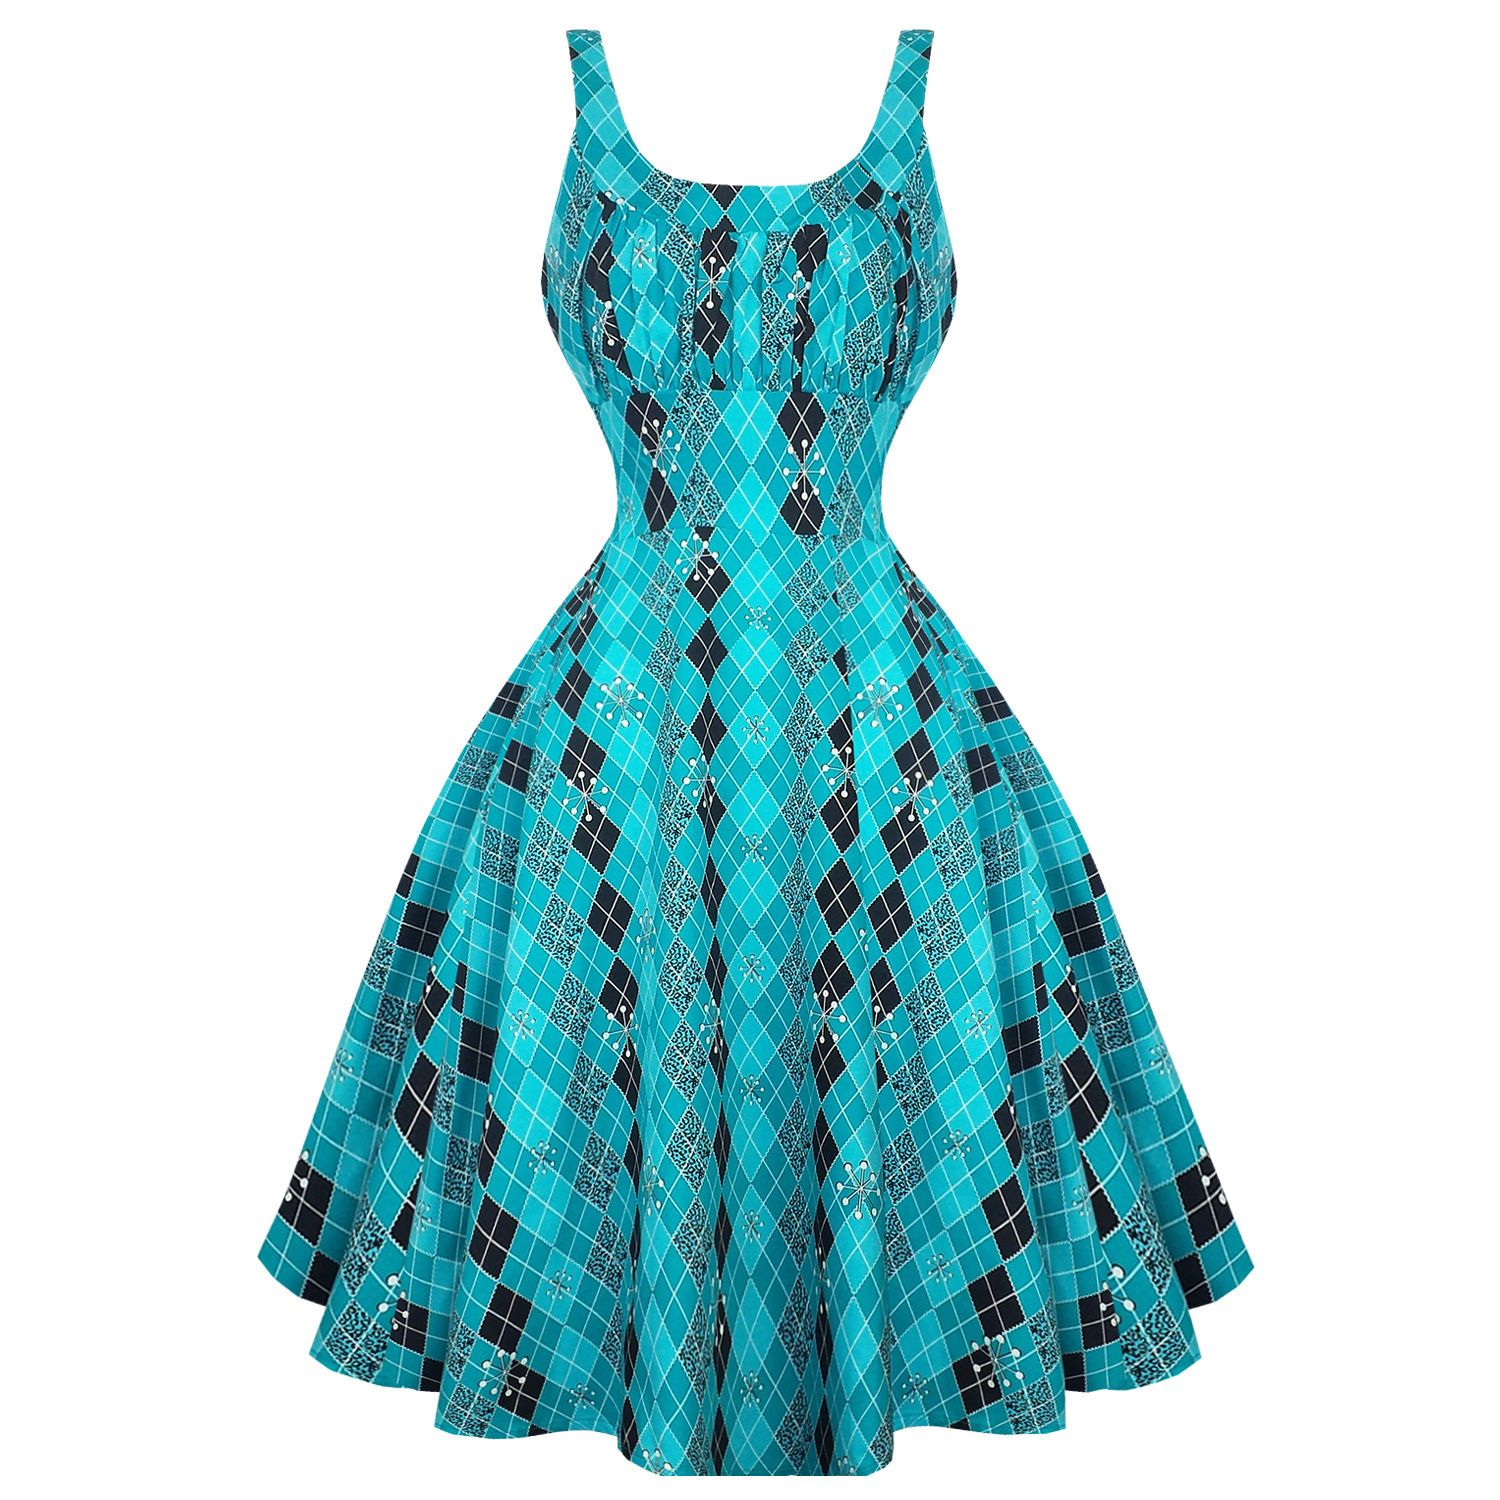 Womens Turquoise Blue Atomic 1950s Rockabilly Pinup Party Prom Dress ...